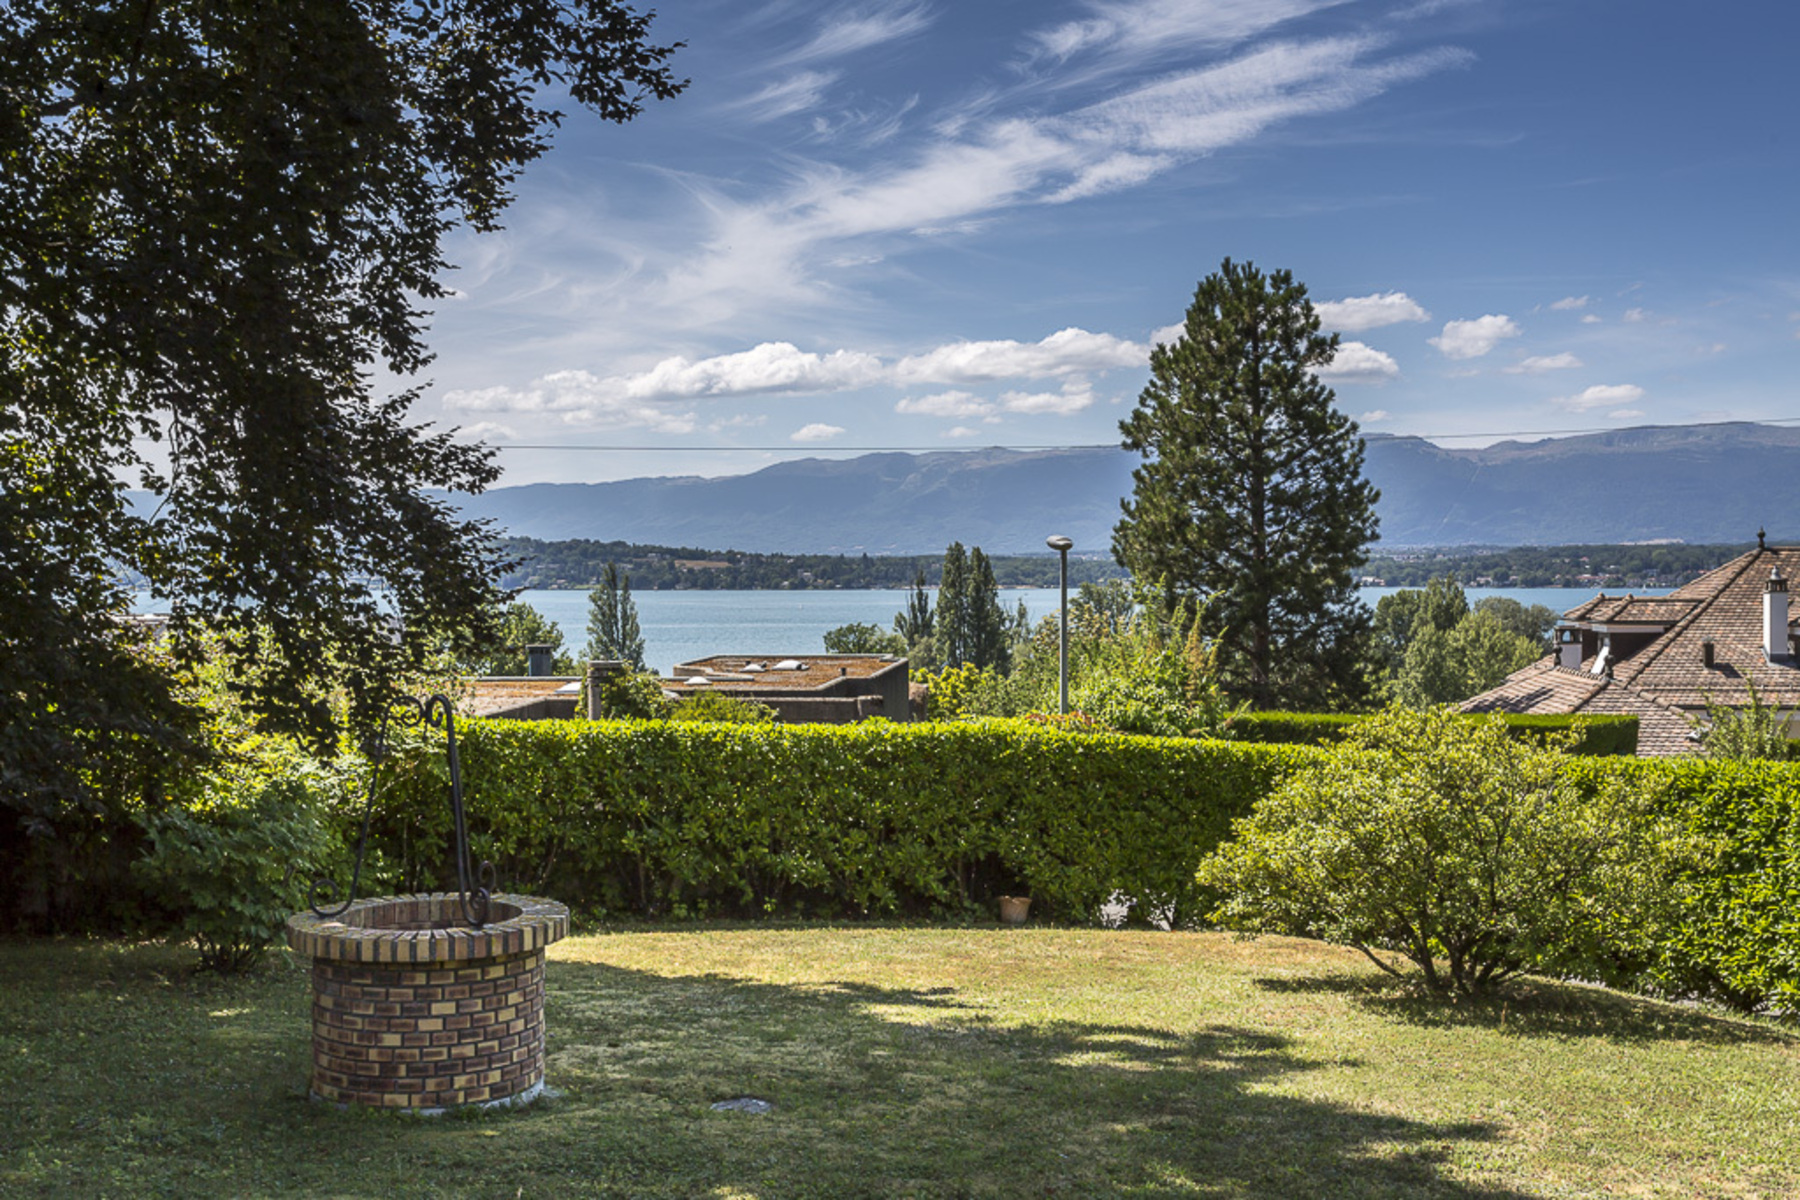 Single Family Home for Sale at Contemporary property with lake view Collonge-Bellerive Collonge-Bellerive, Geneva, 1245 Switzerland